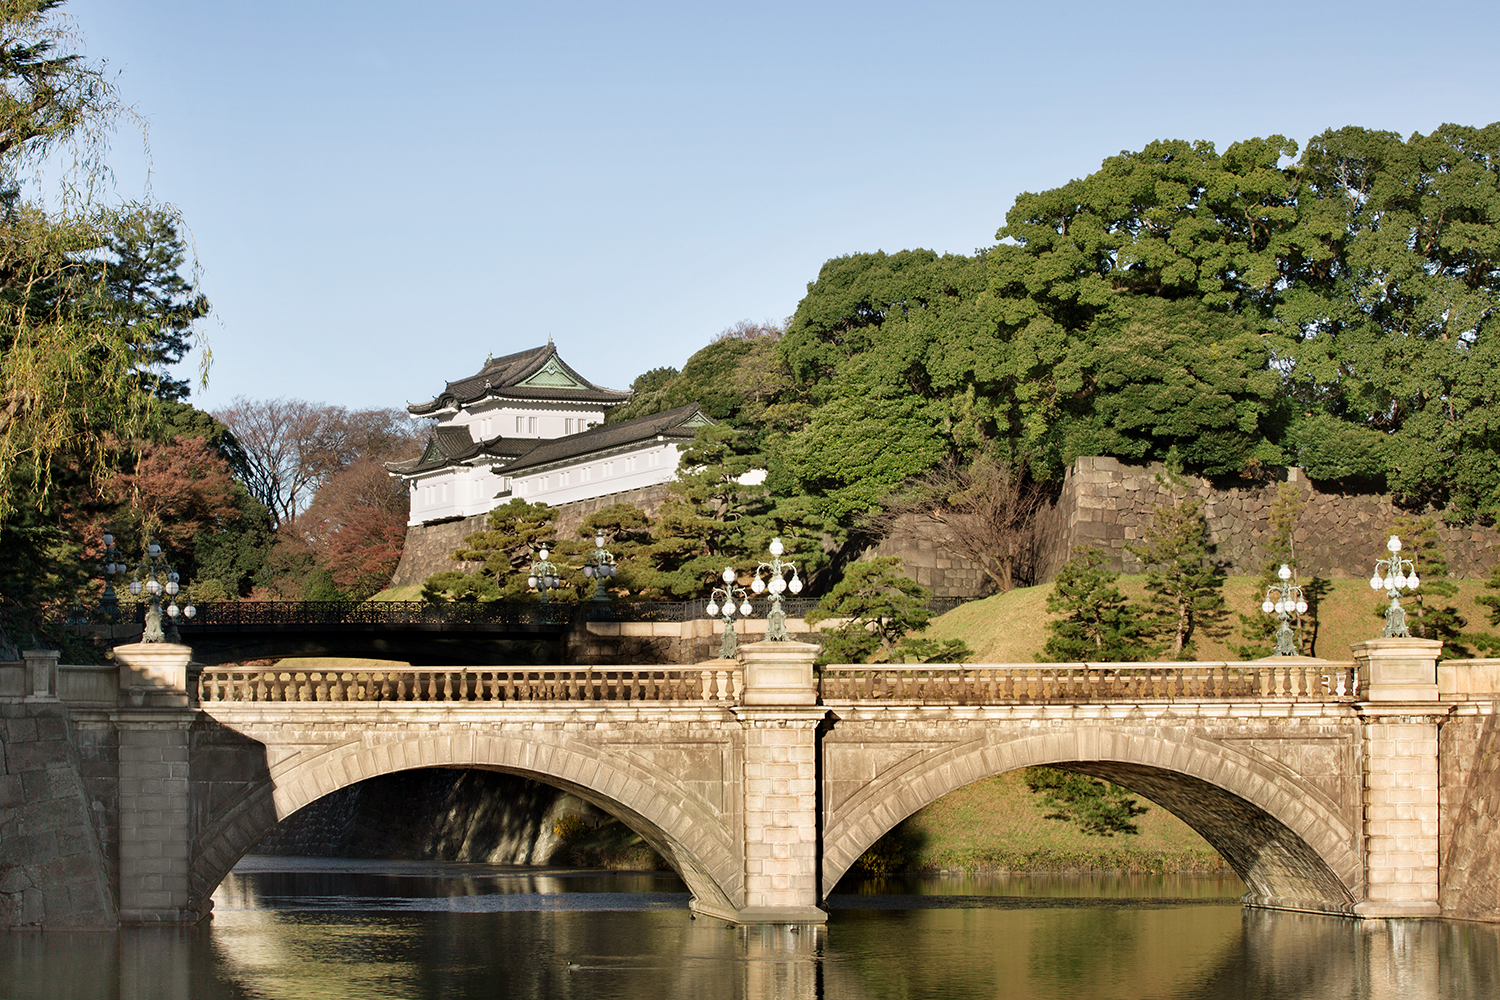 Shangri-La Hotel, Tokyo offers panoramic views of Metropolitan Tokyo and the Imperial Palace.